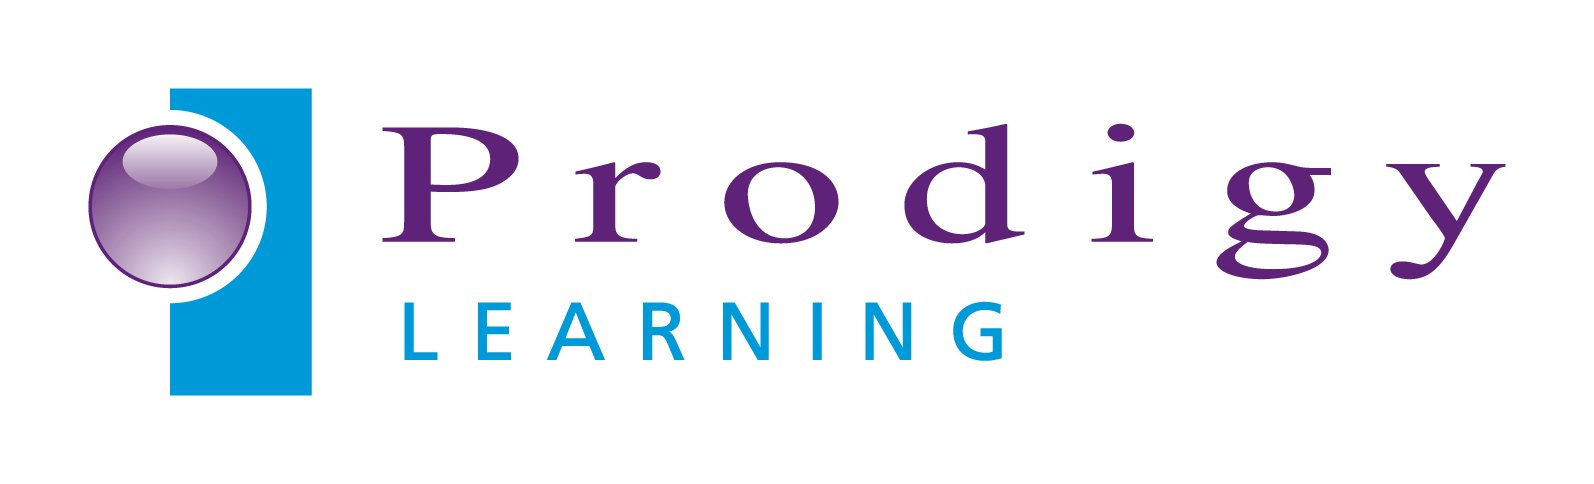 """Prodigy Learning is an award-winning global EdTech business, providing innovative online platforms that enable learners to develop and prove their skills. <br /> These solutions range from skills assessments in education through to job-ready digital skills certifications from IT industry leaders including Adobe, Autodesk and Microsoft. <br /> The Company was established in 2000 and now has offices in Dublin, Ireland, London, UK, Sydney, Australia and New York, United States, serving >3,000 customers in the education, training, corporate and public sectors worldwide. The Company is a Microsoft Authorized Education Gold Partner and Global Training Partner supporting academic institutions with Microsoft Education solutions.<br /> The Company is internationally recognised for its work in the online digital skills and assessment platforms. Our latest generation online assessment platform """"skillify"""" and online Computer Science curriculum """"Coding in Minecraft"""" recently won 'ICT-Platforms and Applications' category at the 2020 EducationInvestor Awards, one of the UK's most prestigious EdTech awards.<br /> <br />"""